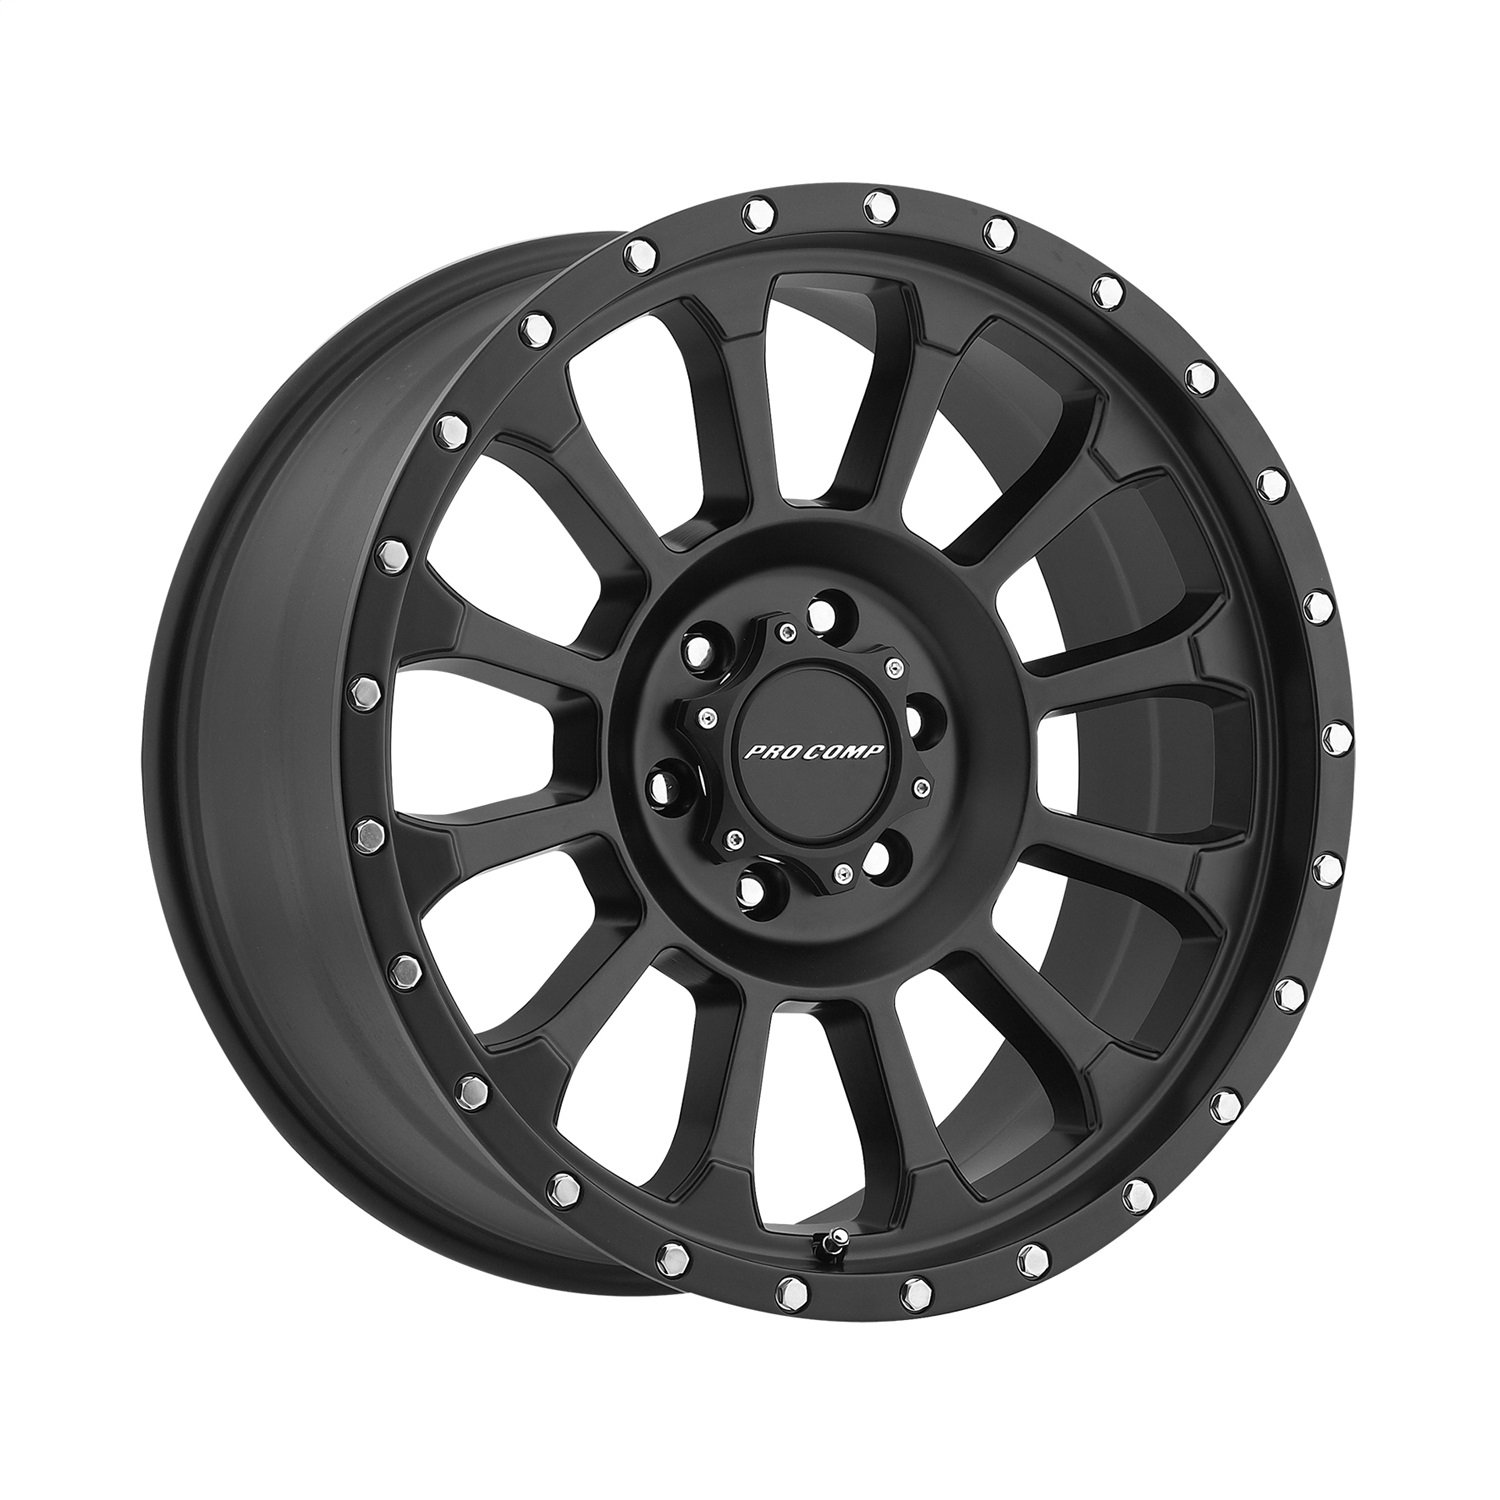 Pro Comp Alloys Series 34 Rockwell Wheel with Satin Black Finish (18x9''/6x135mm)